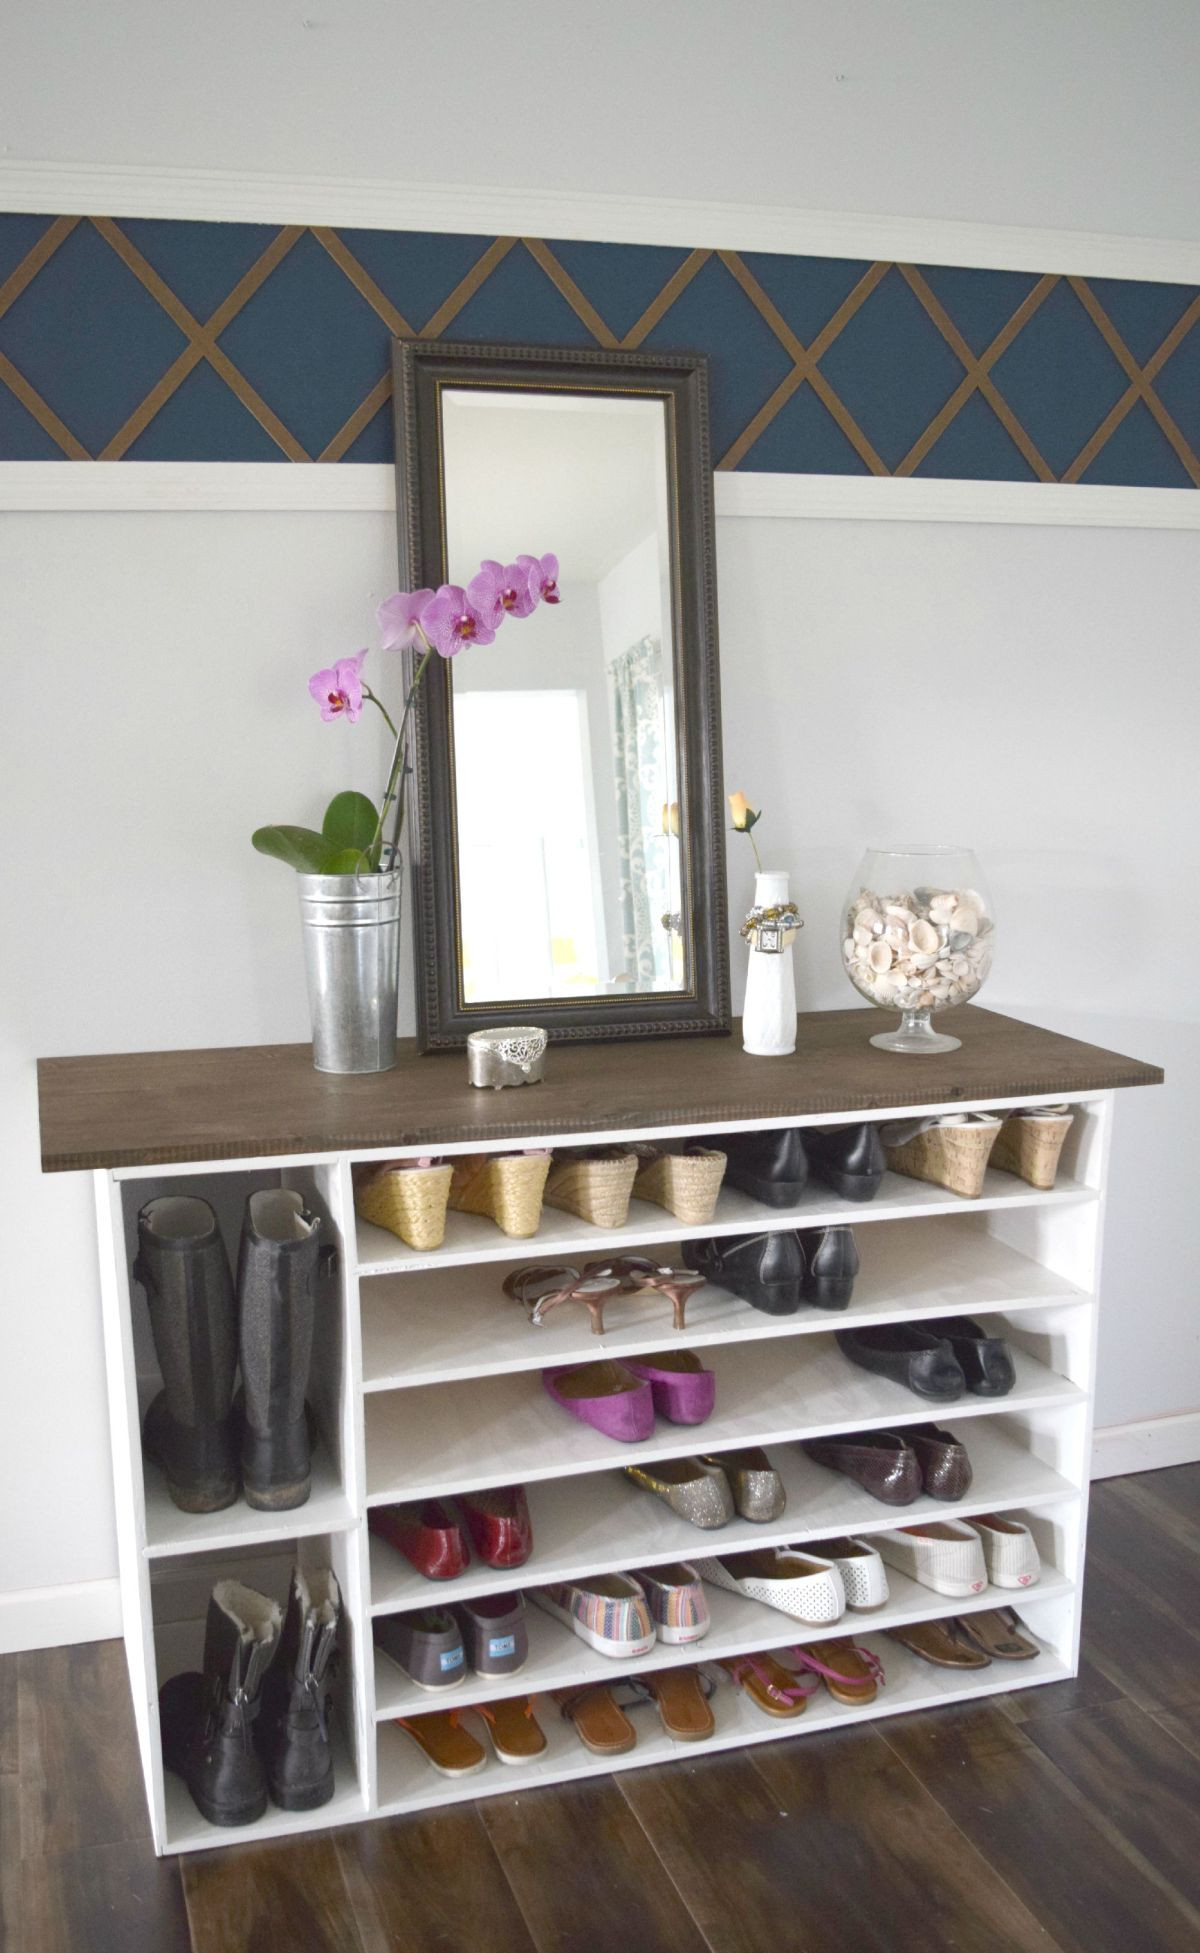 Best ideas about DIY Shoes Rack Ideas . Save or Pin Stylish DIY Shoe Rack Perfect for Any Room Now.